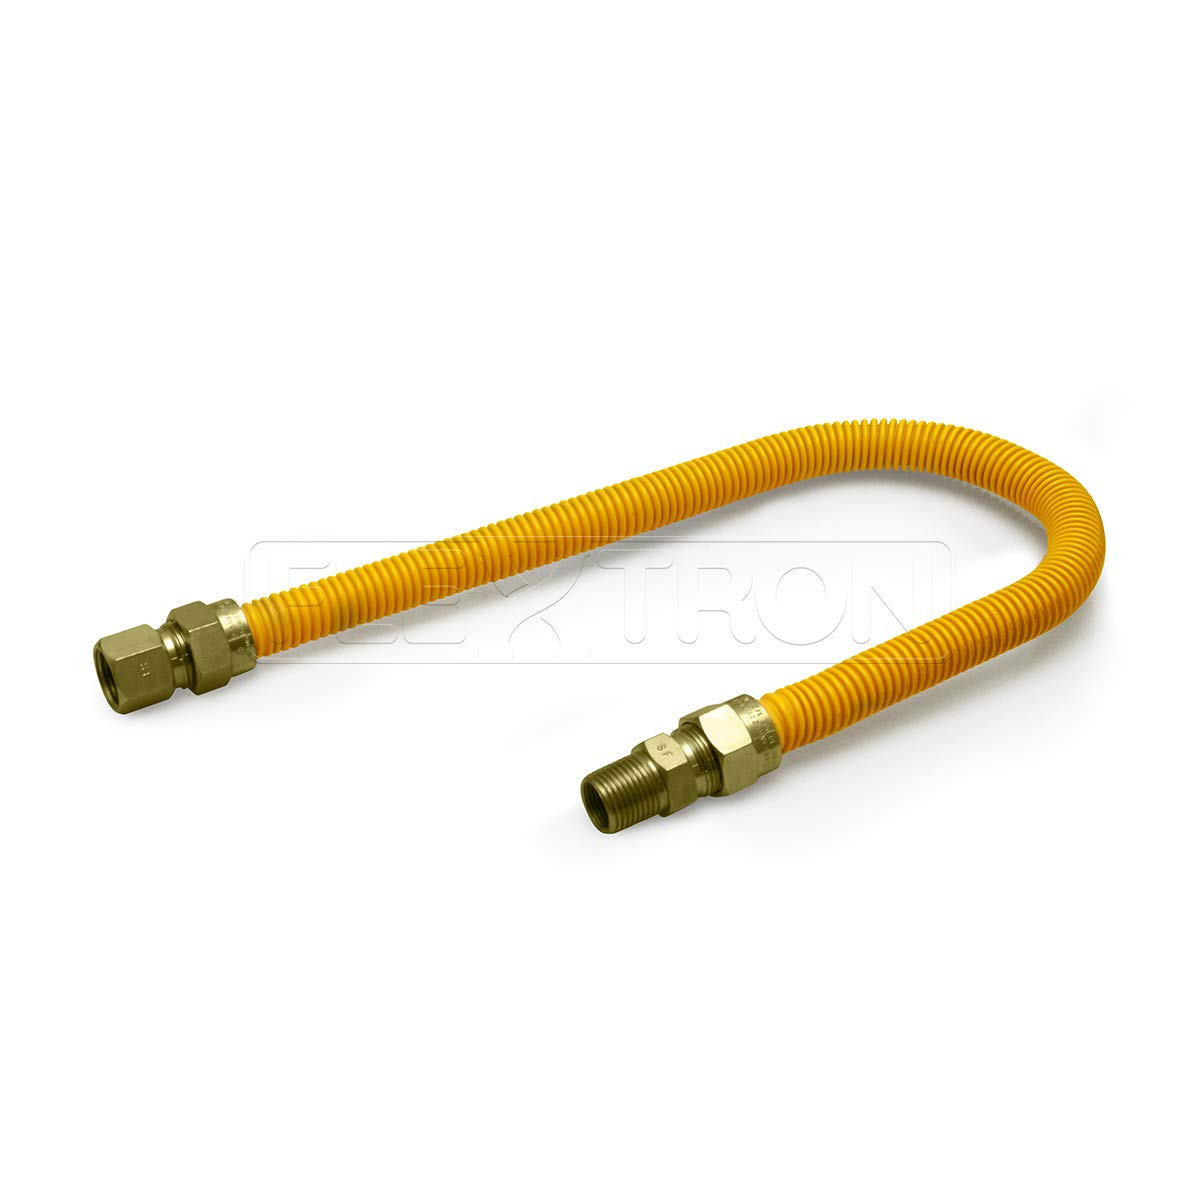 Flextron FTGC-YC12-36C Flexible Epoxy Gas Line, Gas Pipe Connector With 5/8 in. Outer Diameter and 1/2 in. Inside Diameter; 1/2 in. FIP x 1/2 in MIP Fittings; Yellow/Stainless Steel Gas Hose 36 in. Long